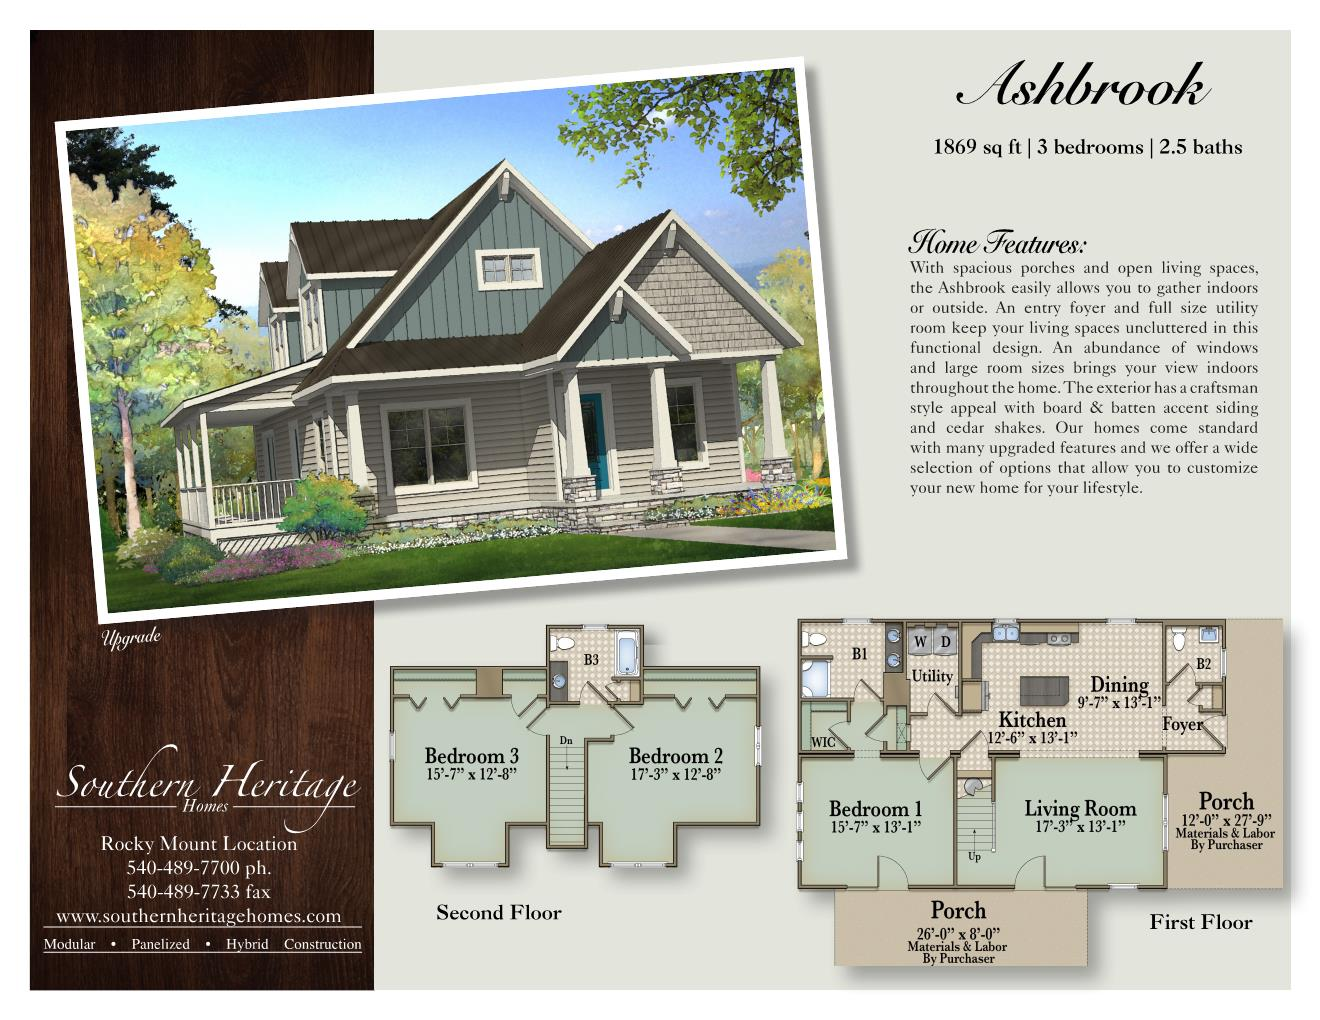 The Ashbrook Southern Heritage Homes